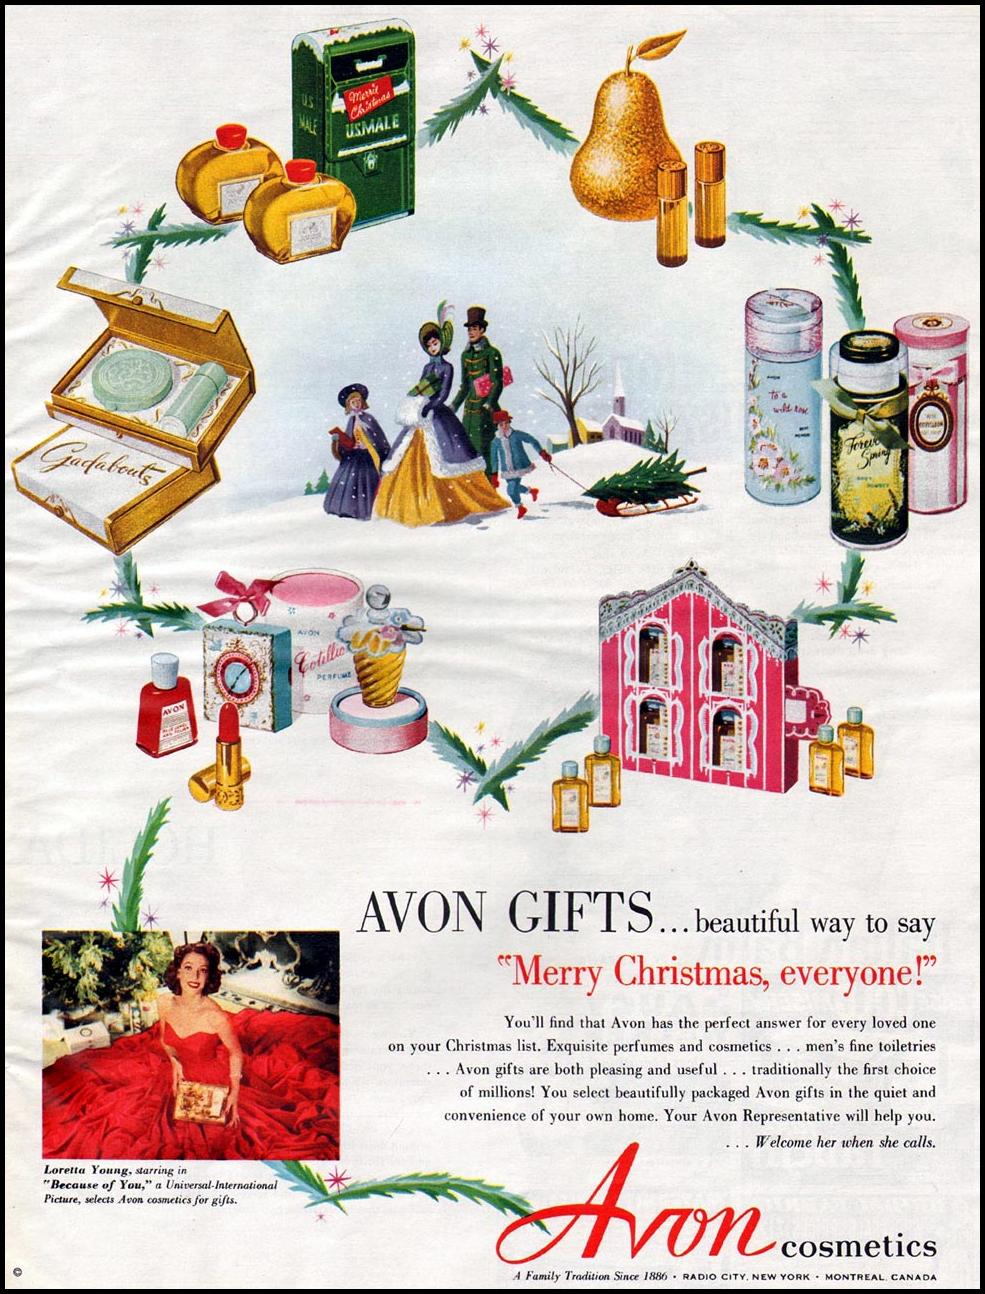 AVON COSMETICS WOMAN'S HOME COMPANION 12/01/1952 p. 113